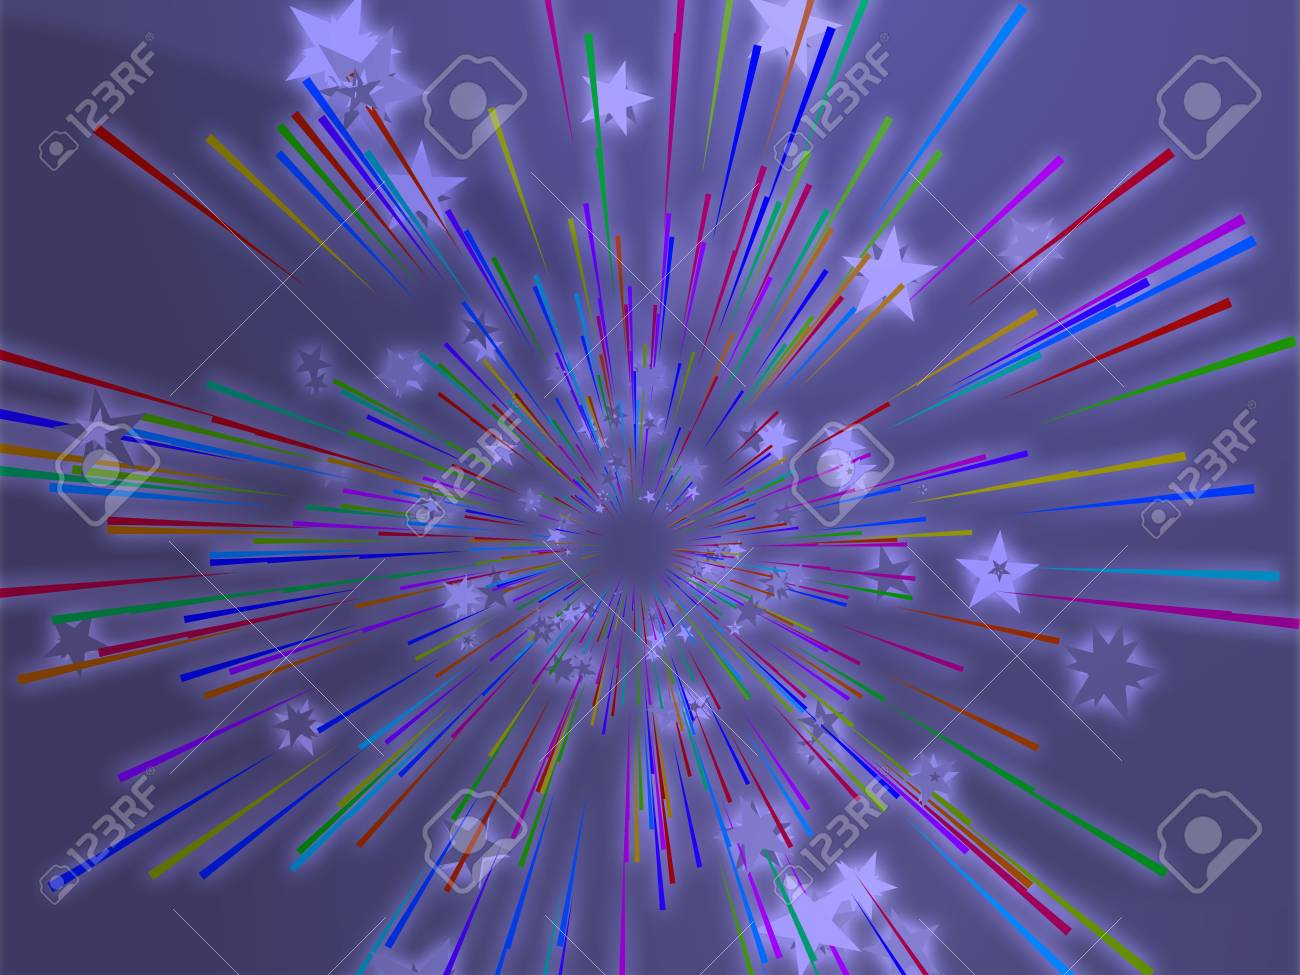 Central bursting explosion of dynamic flying stars, abstract illustration Stock Photo - 3857383